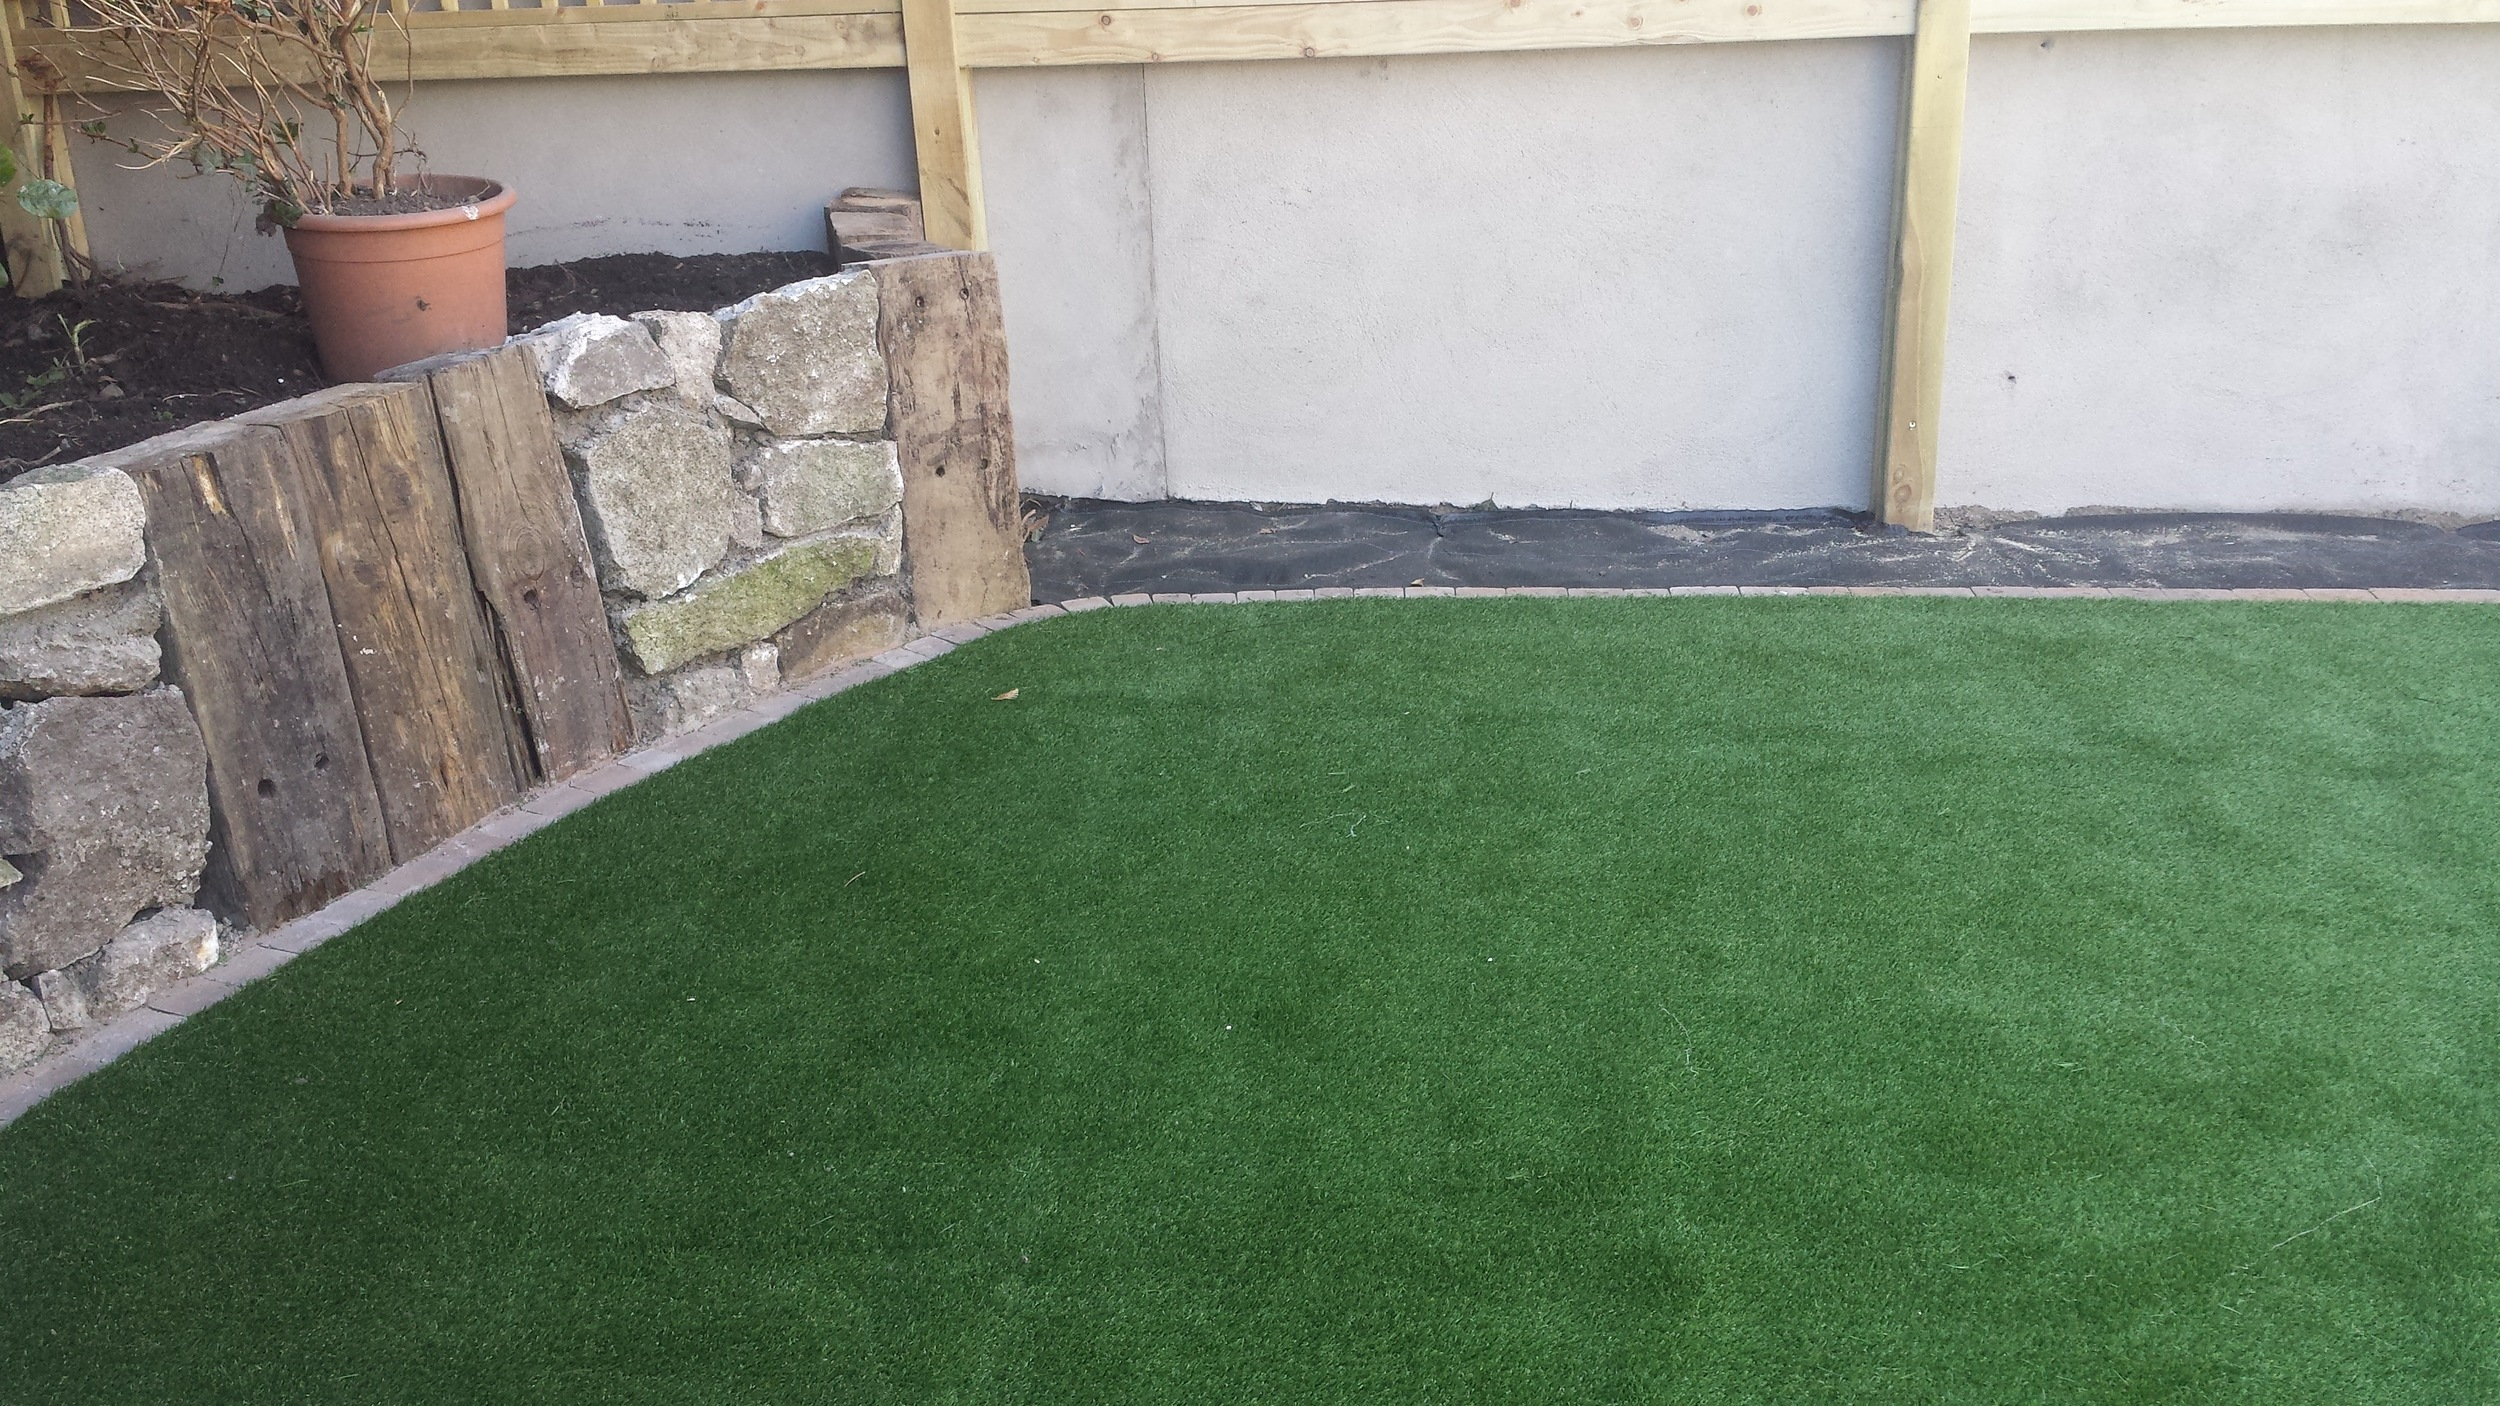 green synthetic grass lawn.jpg